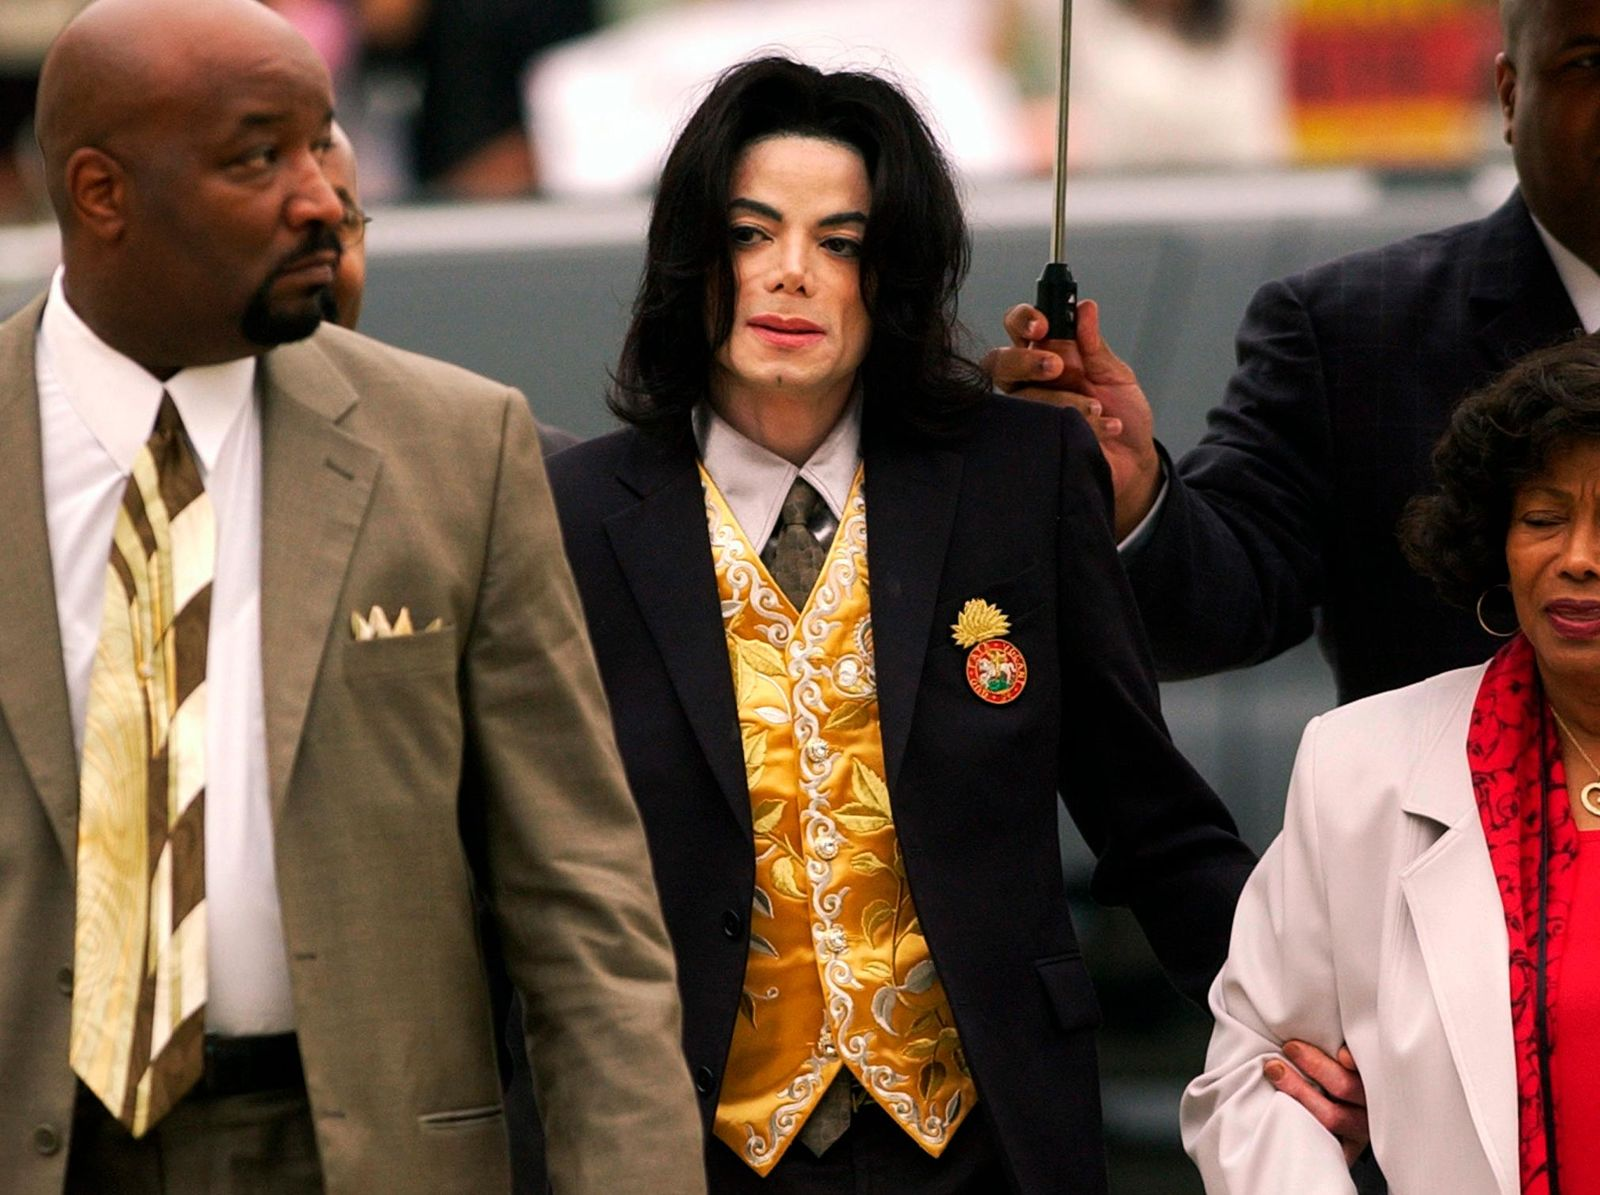 "FILE - In this May 25, 2005 file photo, Michael Jackson arrives at the Santa Barbara County Courthouse for his child molestation trial in Santa Maria, Calif. A documentary film about two boys who accused Michael Jackson of sexual abuse is set to premiere at the Sundance Film Festival later this month. The Sundance Institute announced the addition of ""Leaving Neverland"" and ""The Brink,"" a documentary about Steve Bannon, to its 2019 lineup on Wednesday. The Sundance Film Festival kicks off on Jan 24 and runs through Feb. 4. (Aaron Lambert/Santa Maria Times via AP, Pool)"